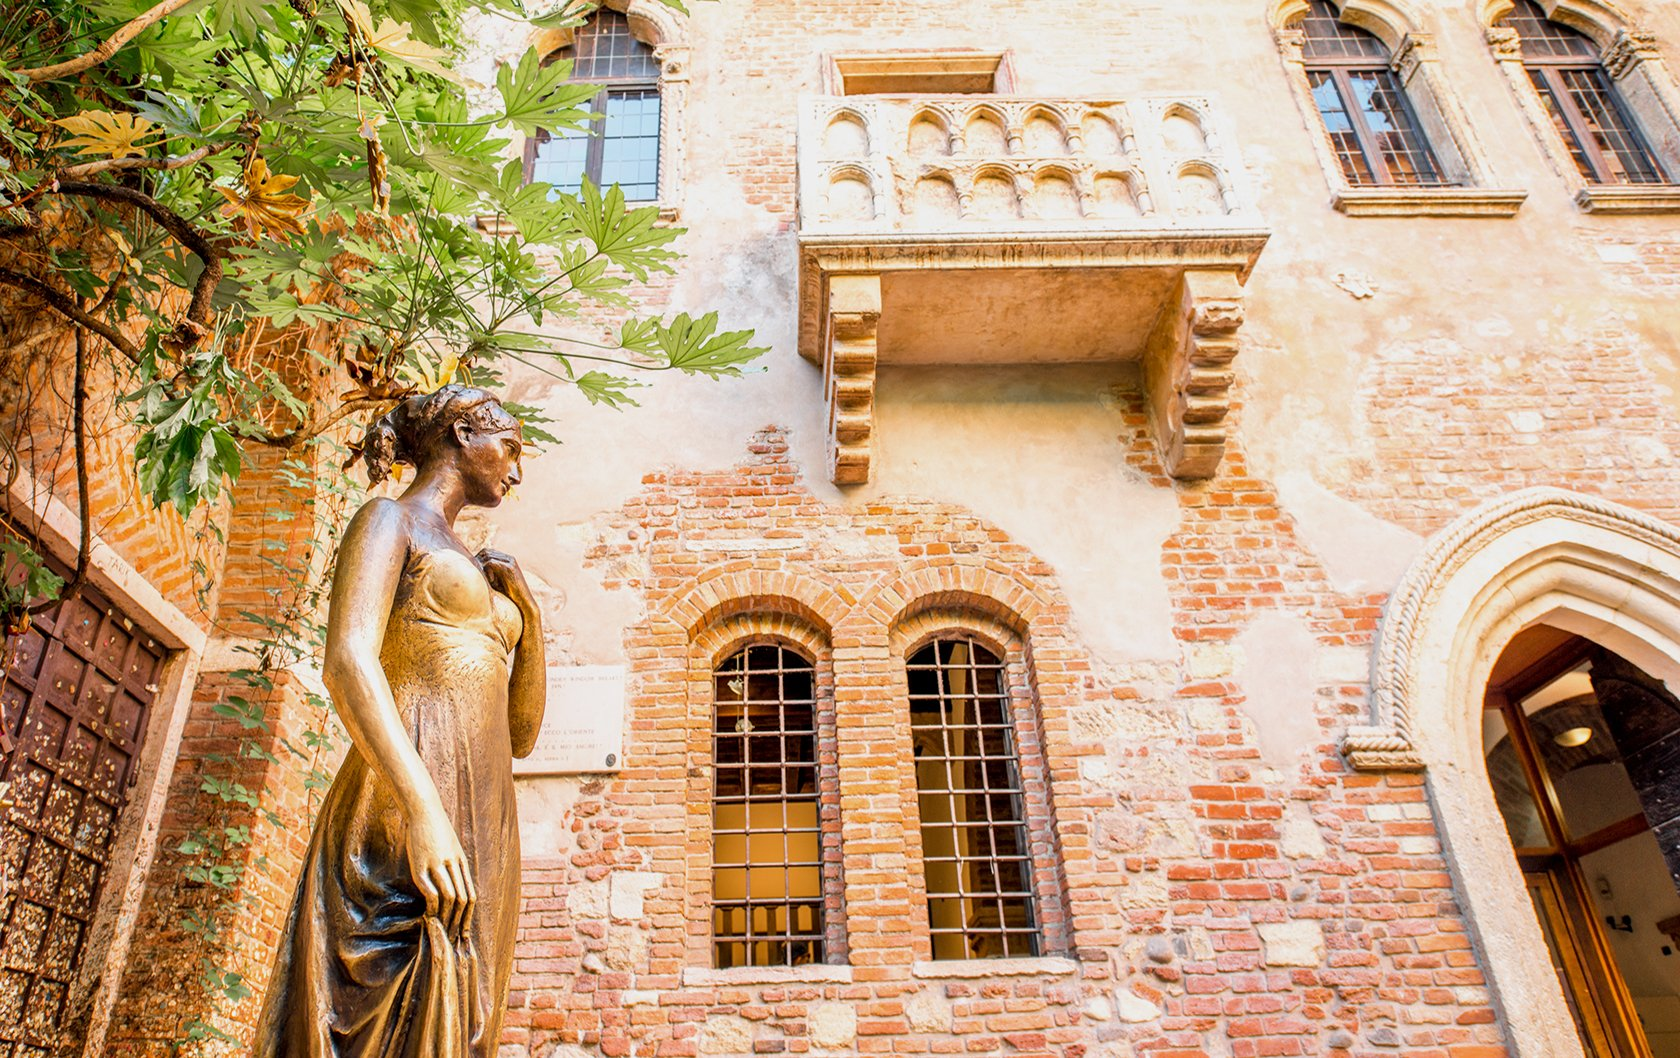 Verona's Romantic Inspiration from Romeo and Juliet